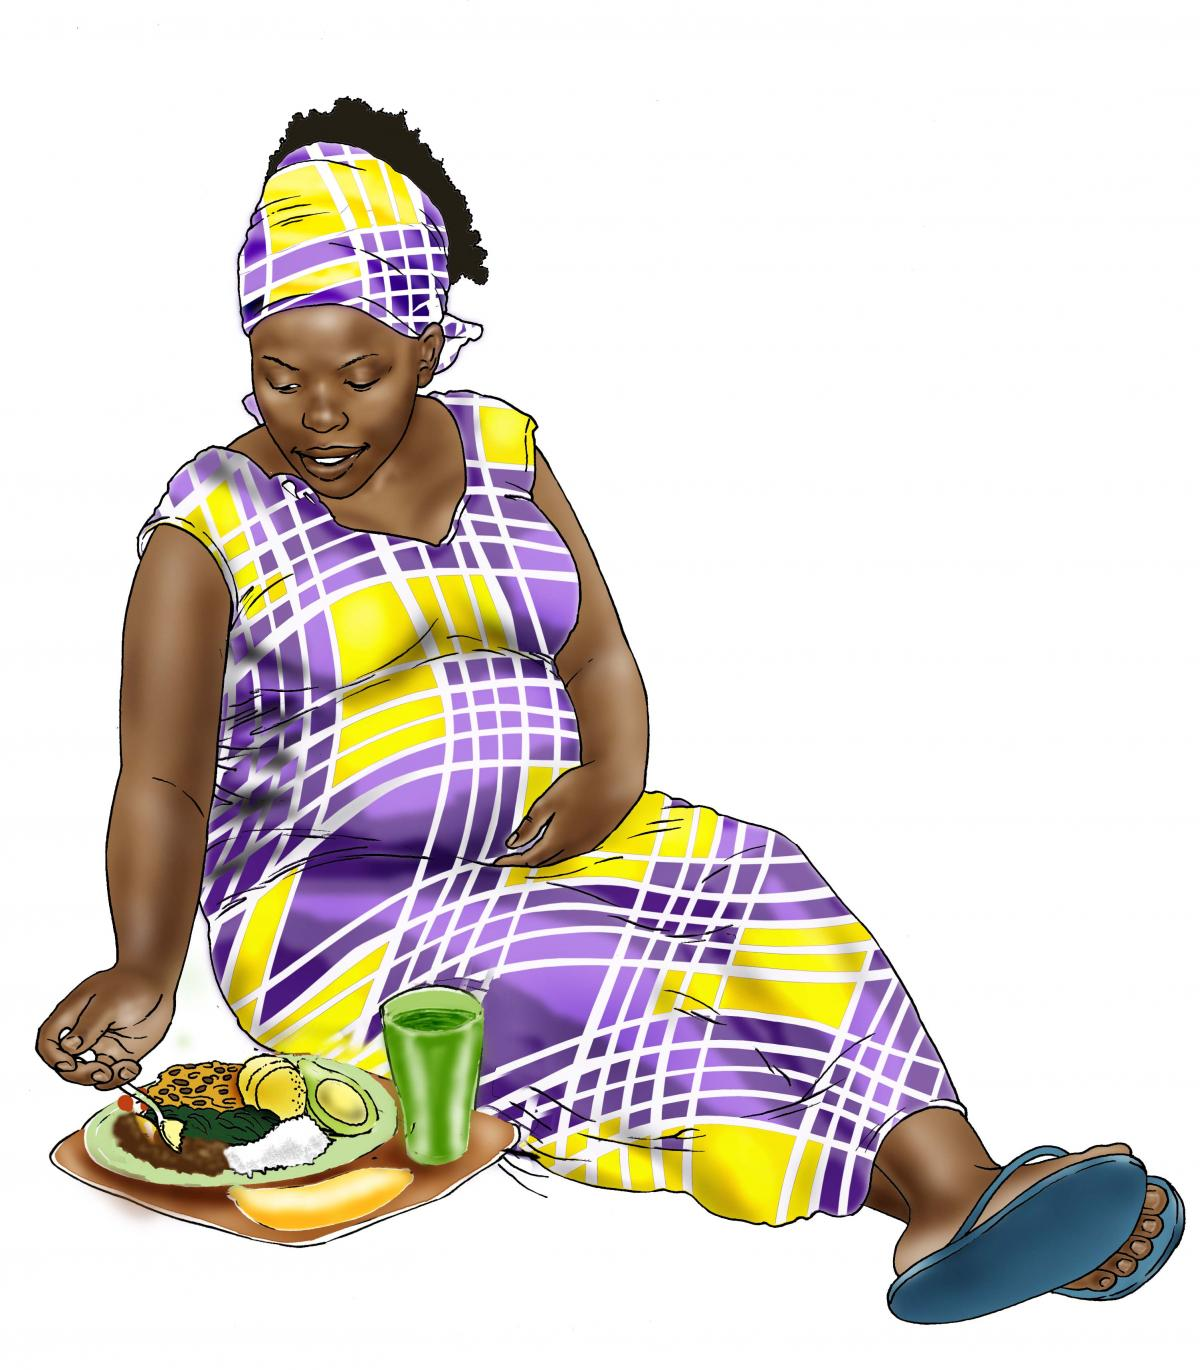 Maternal nutrition - Pregnant woman eating healthy meal - 05 - Nigeria